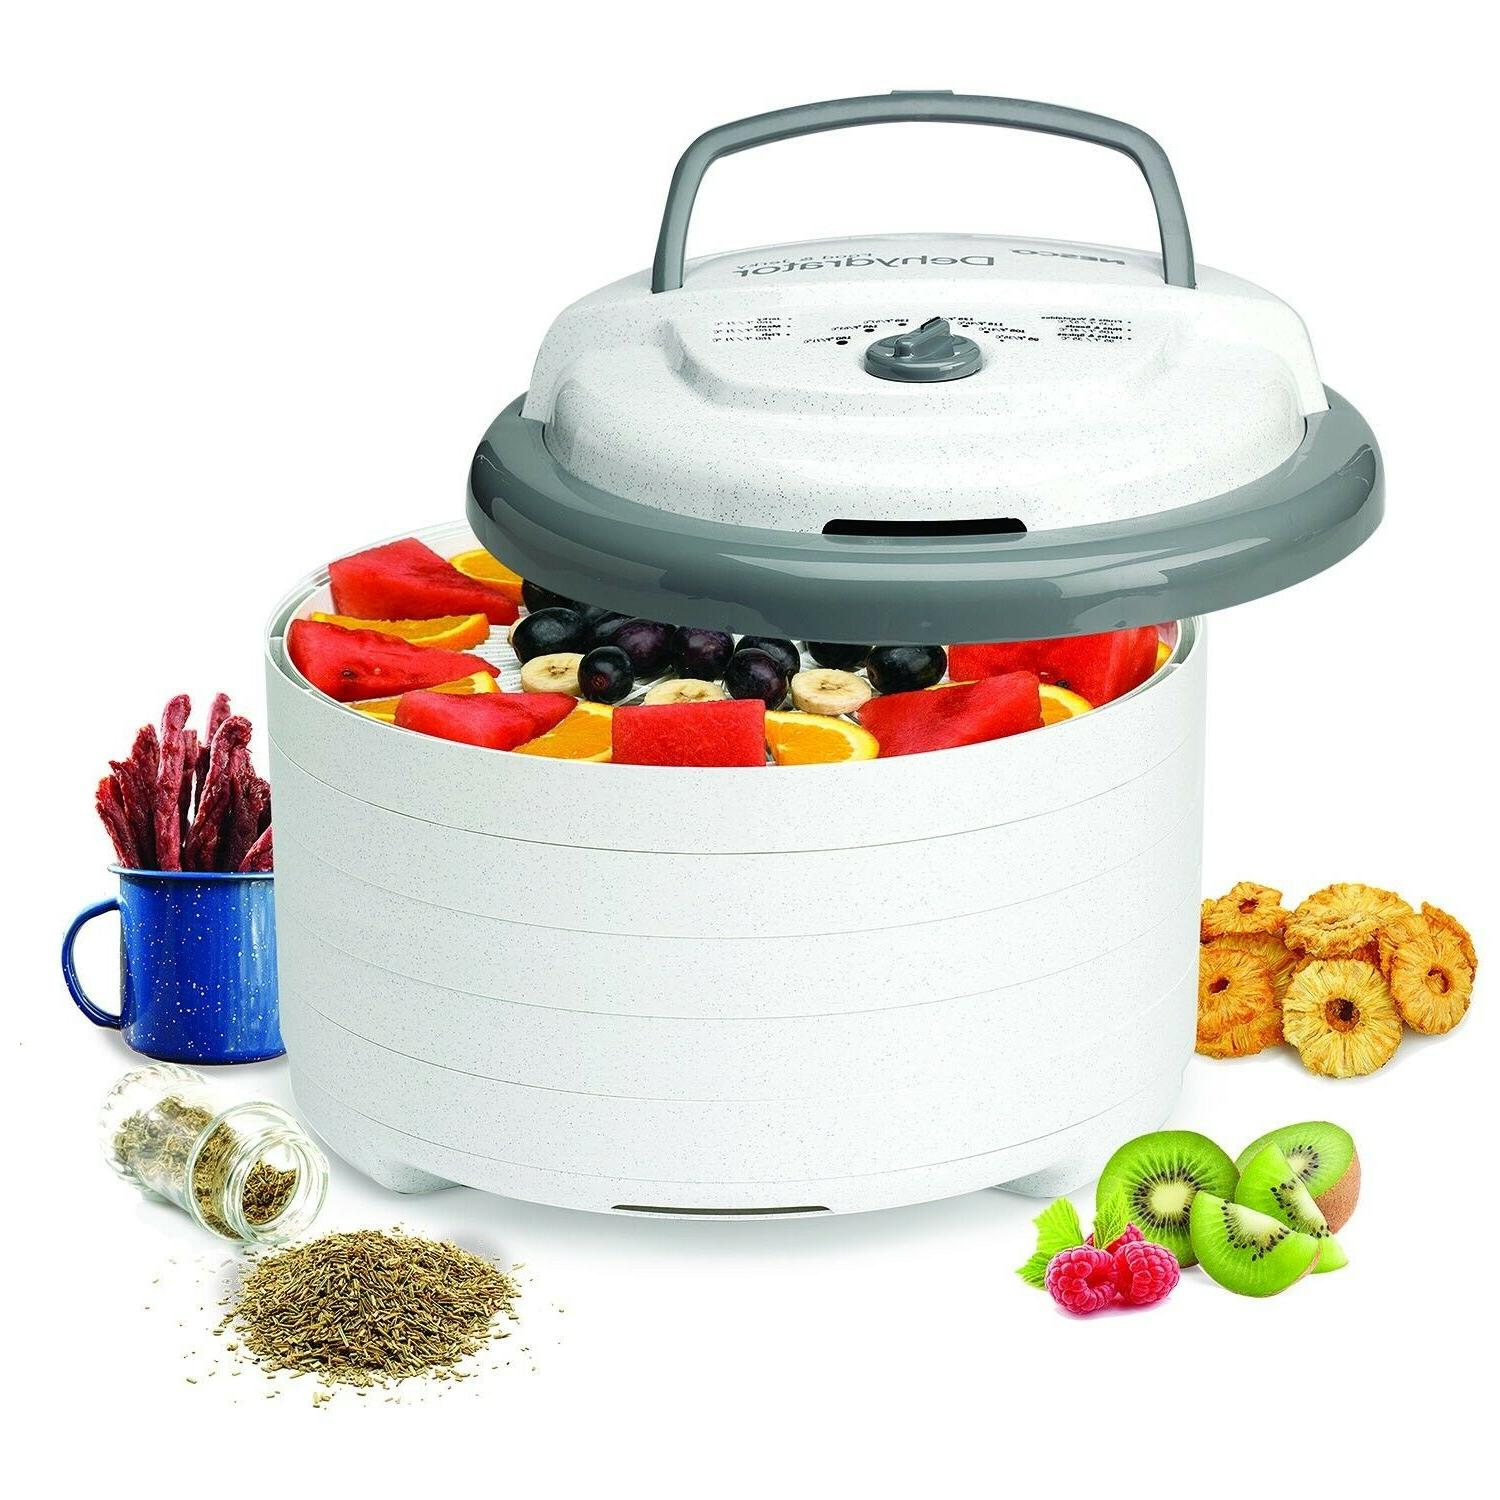 SALE NEW HOT - FD-75A, Snackmaster Food Dehydrator,